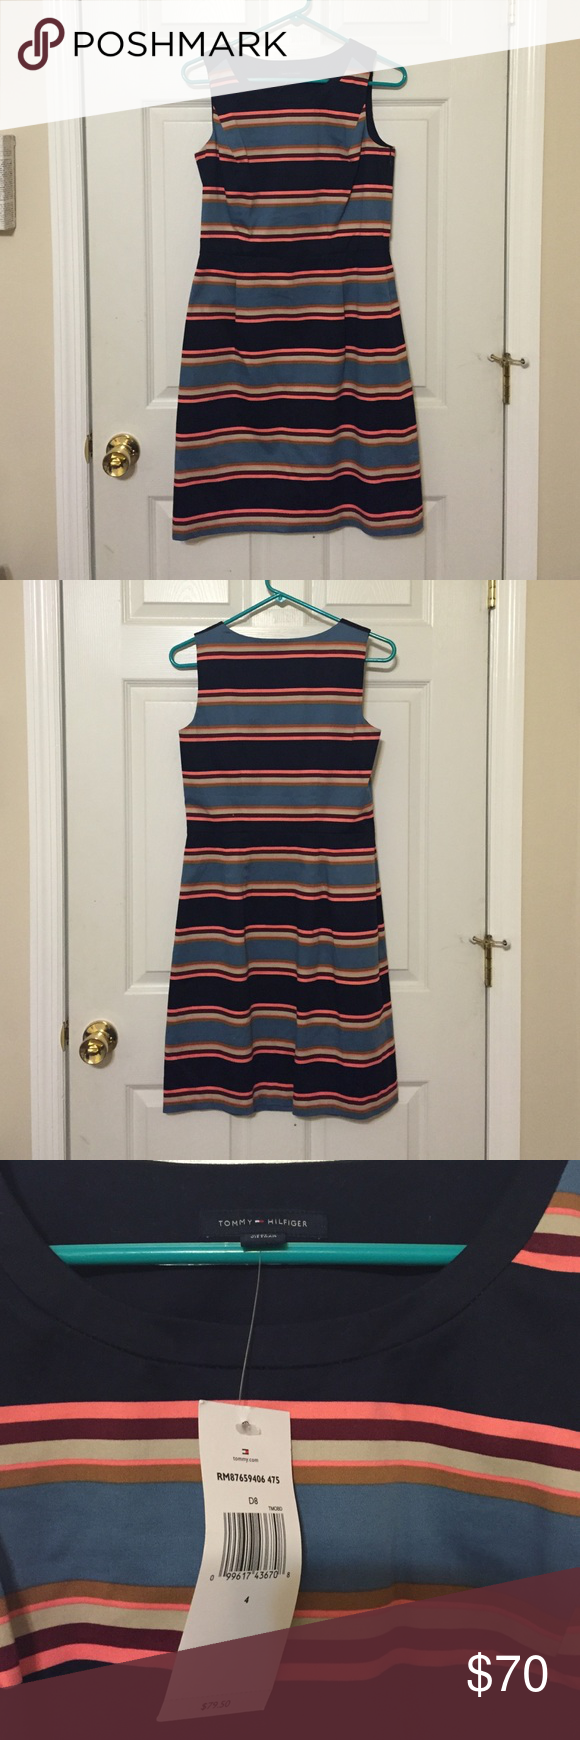 NWT Tommy Hilfiger Dress NWT! In perfect condition! Great for work, or brunch! On Ⓜ️ for less! (Same username) Tommy Hilfiger Dresses Midi